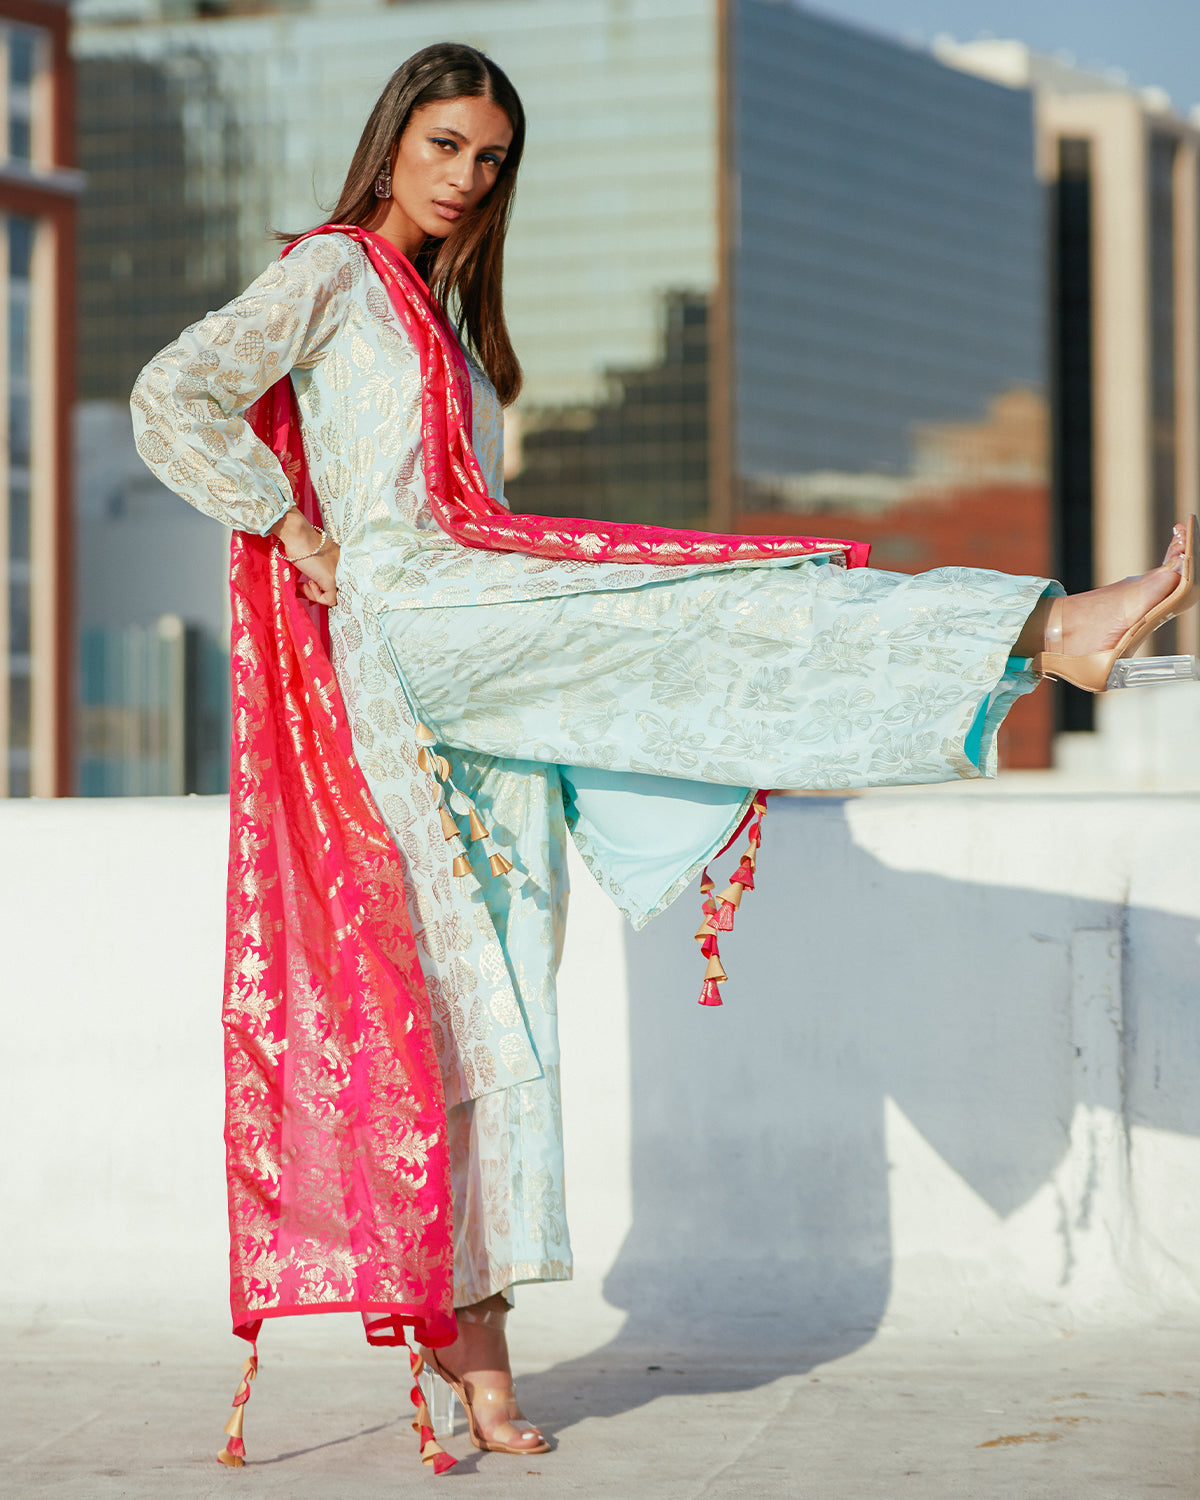 Ice Blue Kurta and Fuschia Pink Full Sleeves Outfit | House of Masaba